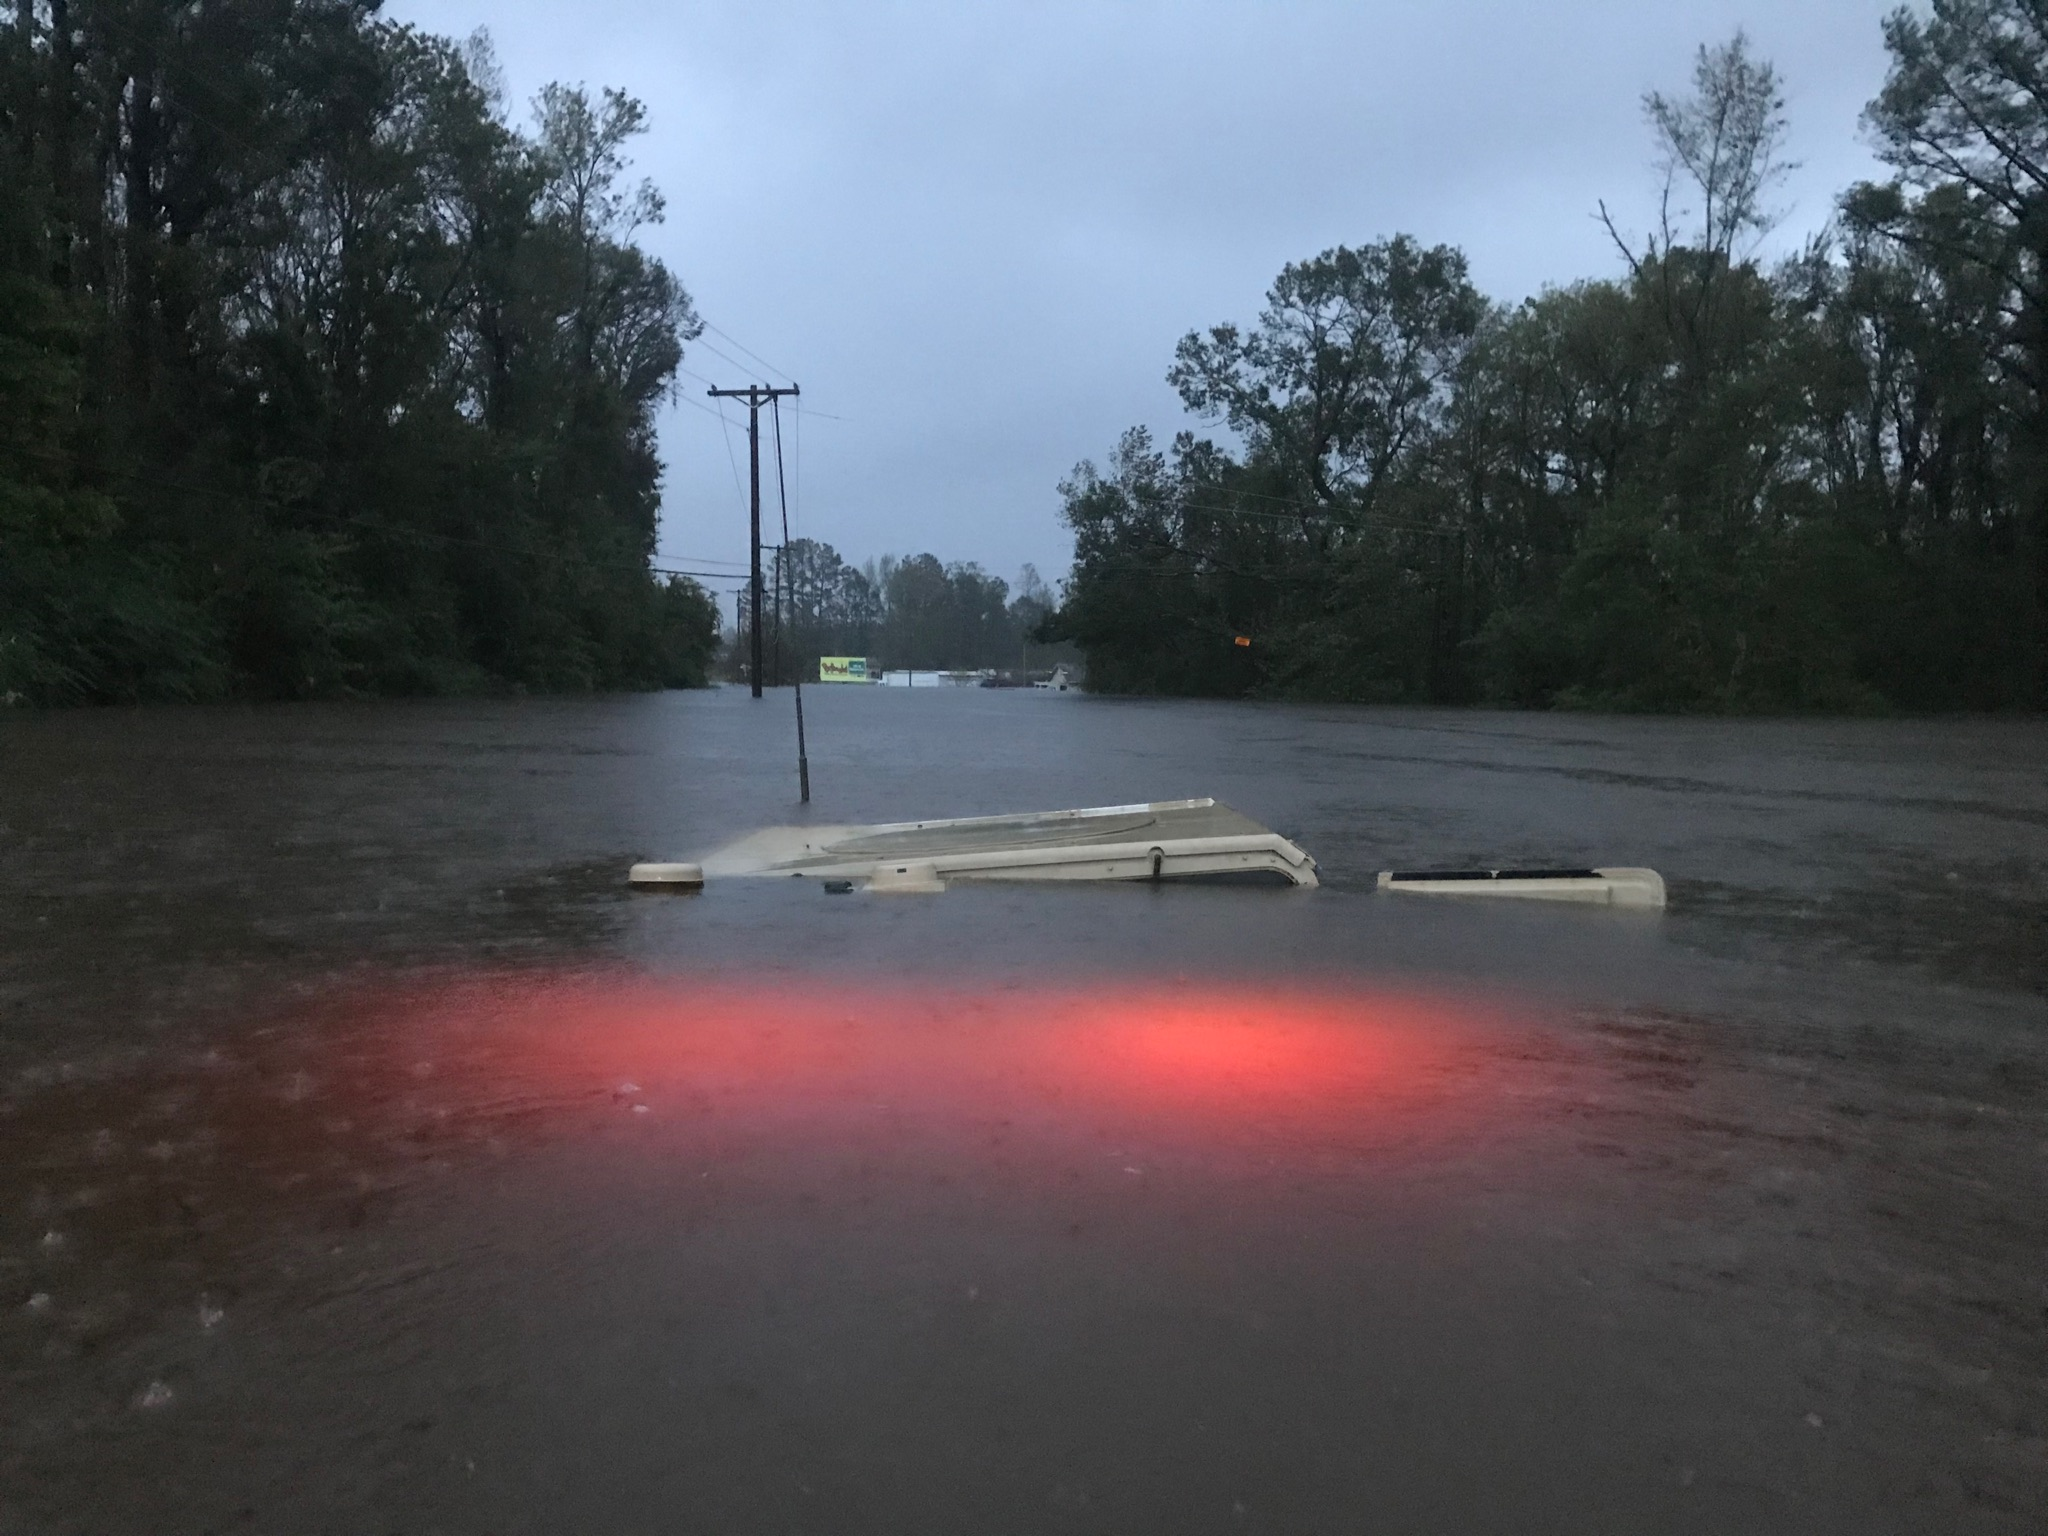 "<div class=""meta image-caption""><div class=""origin-logo origin-image wtvd""><span>WTVD</span></div><span class=""caption-text"">The lights remain on in this flooded military HMMWV in Jacksonville, NC. (ABC11 Eyewitness - Kaycie Burns)</span></div>"